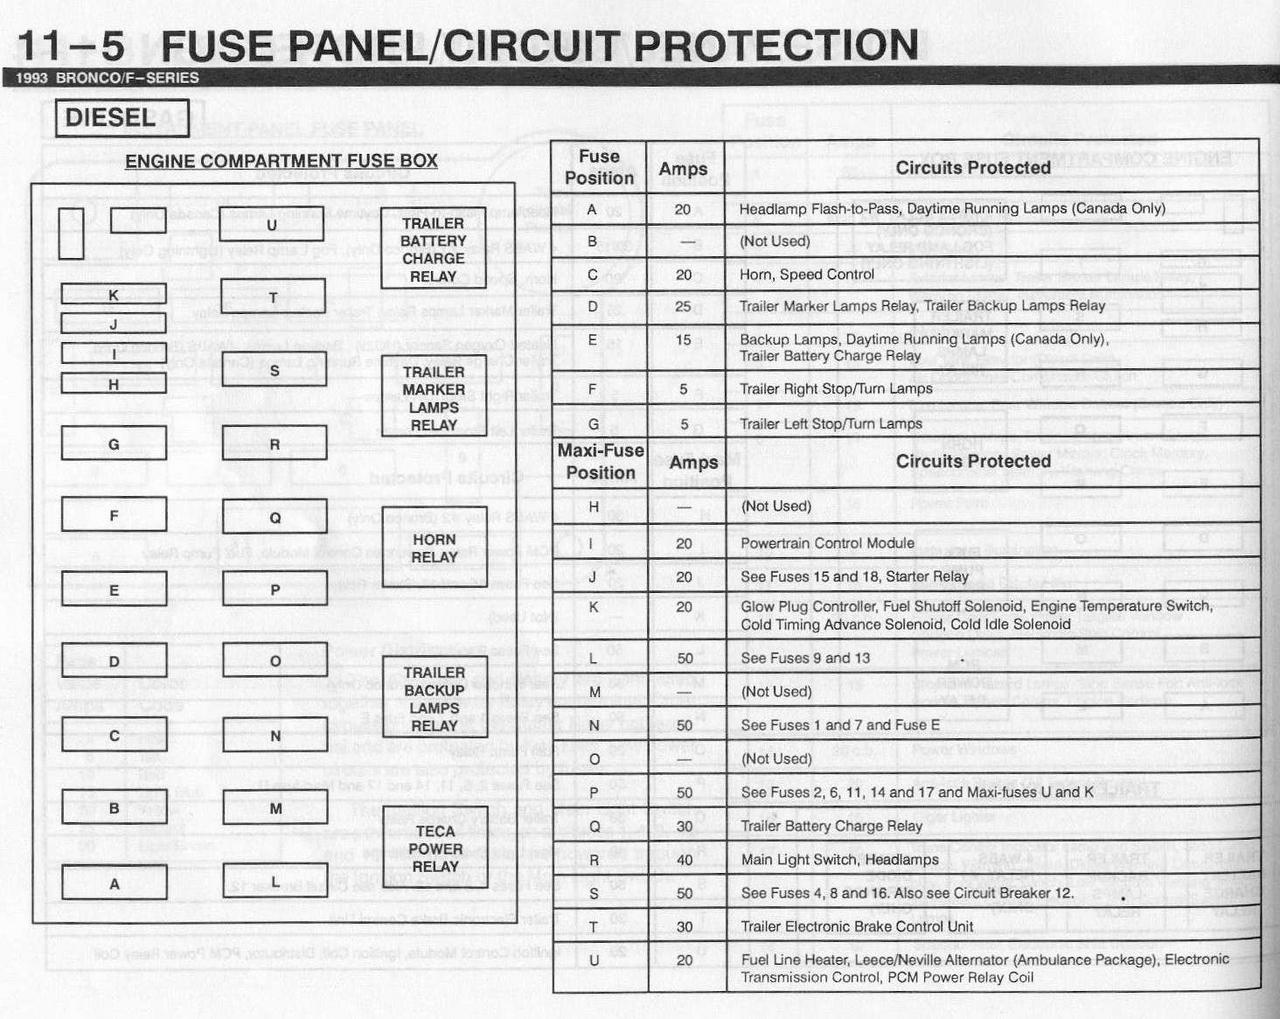 95 f250 fuse box diagram manual guide wiring diagram Ford F-150 Wiring Harness Diagram 1993 f150 fuse box wiring diagram1992 ford tempo fuse box diagram data wiring diagram1993 ford tempo